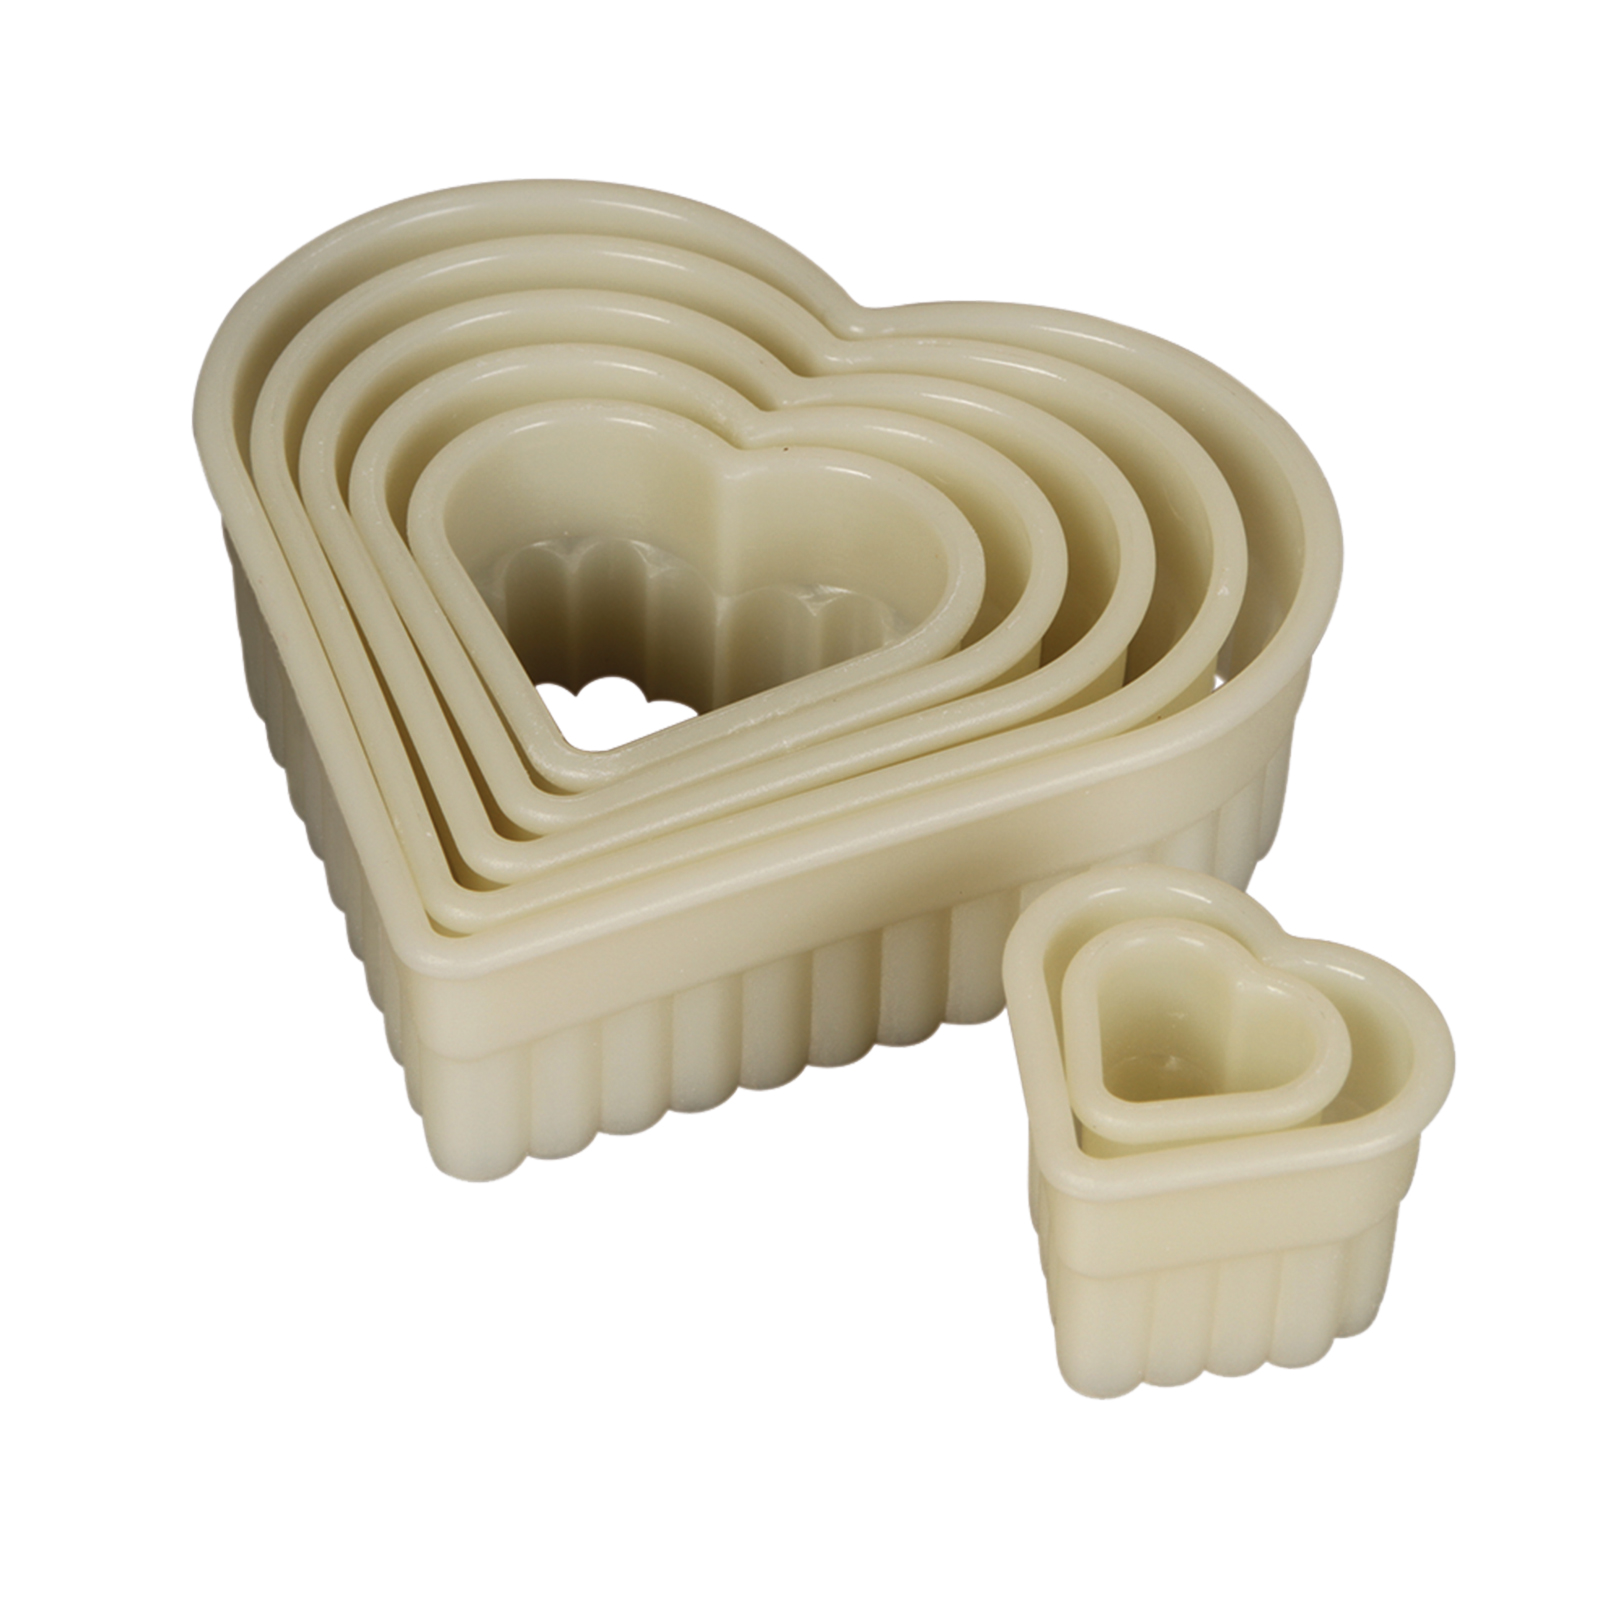 Mercer Culinary M35506 dough/cookie cutter